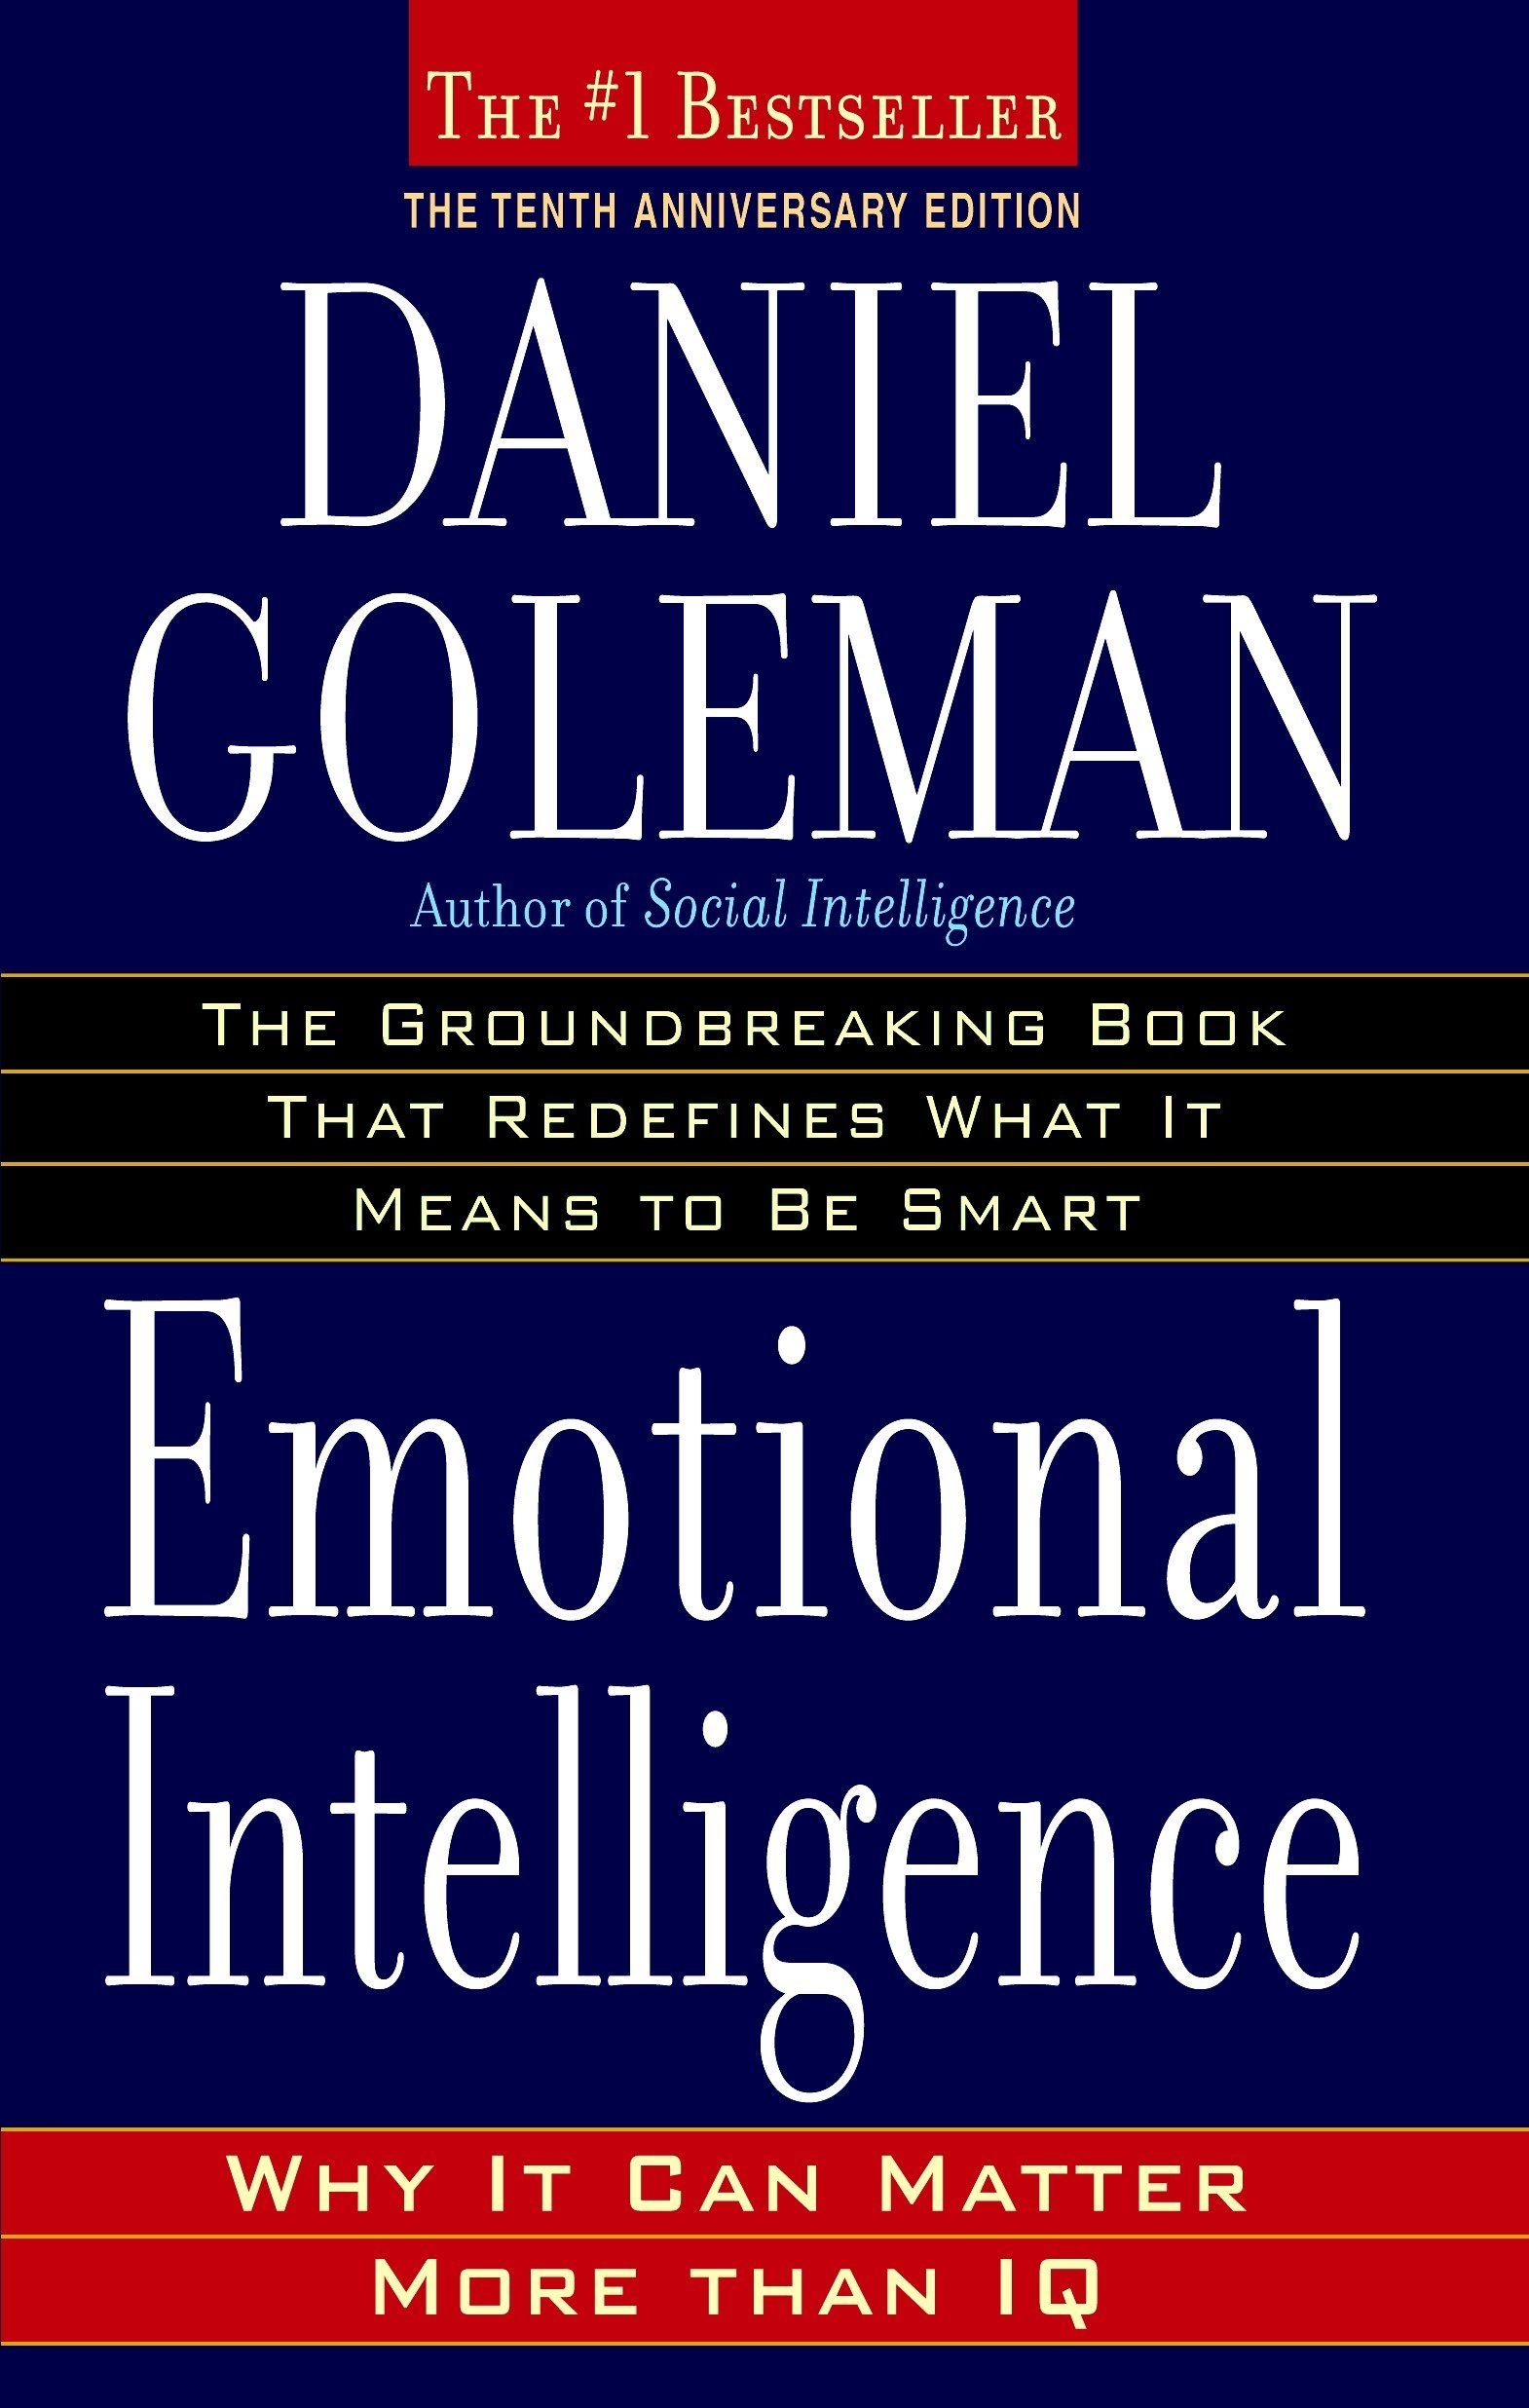 Emotional Intelligence by Daniel Coleman - IQ is locked, EQ (emotional intelligence) can be learned. The most powerful tool to becoming the natural leader that exists inside you. Read More